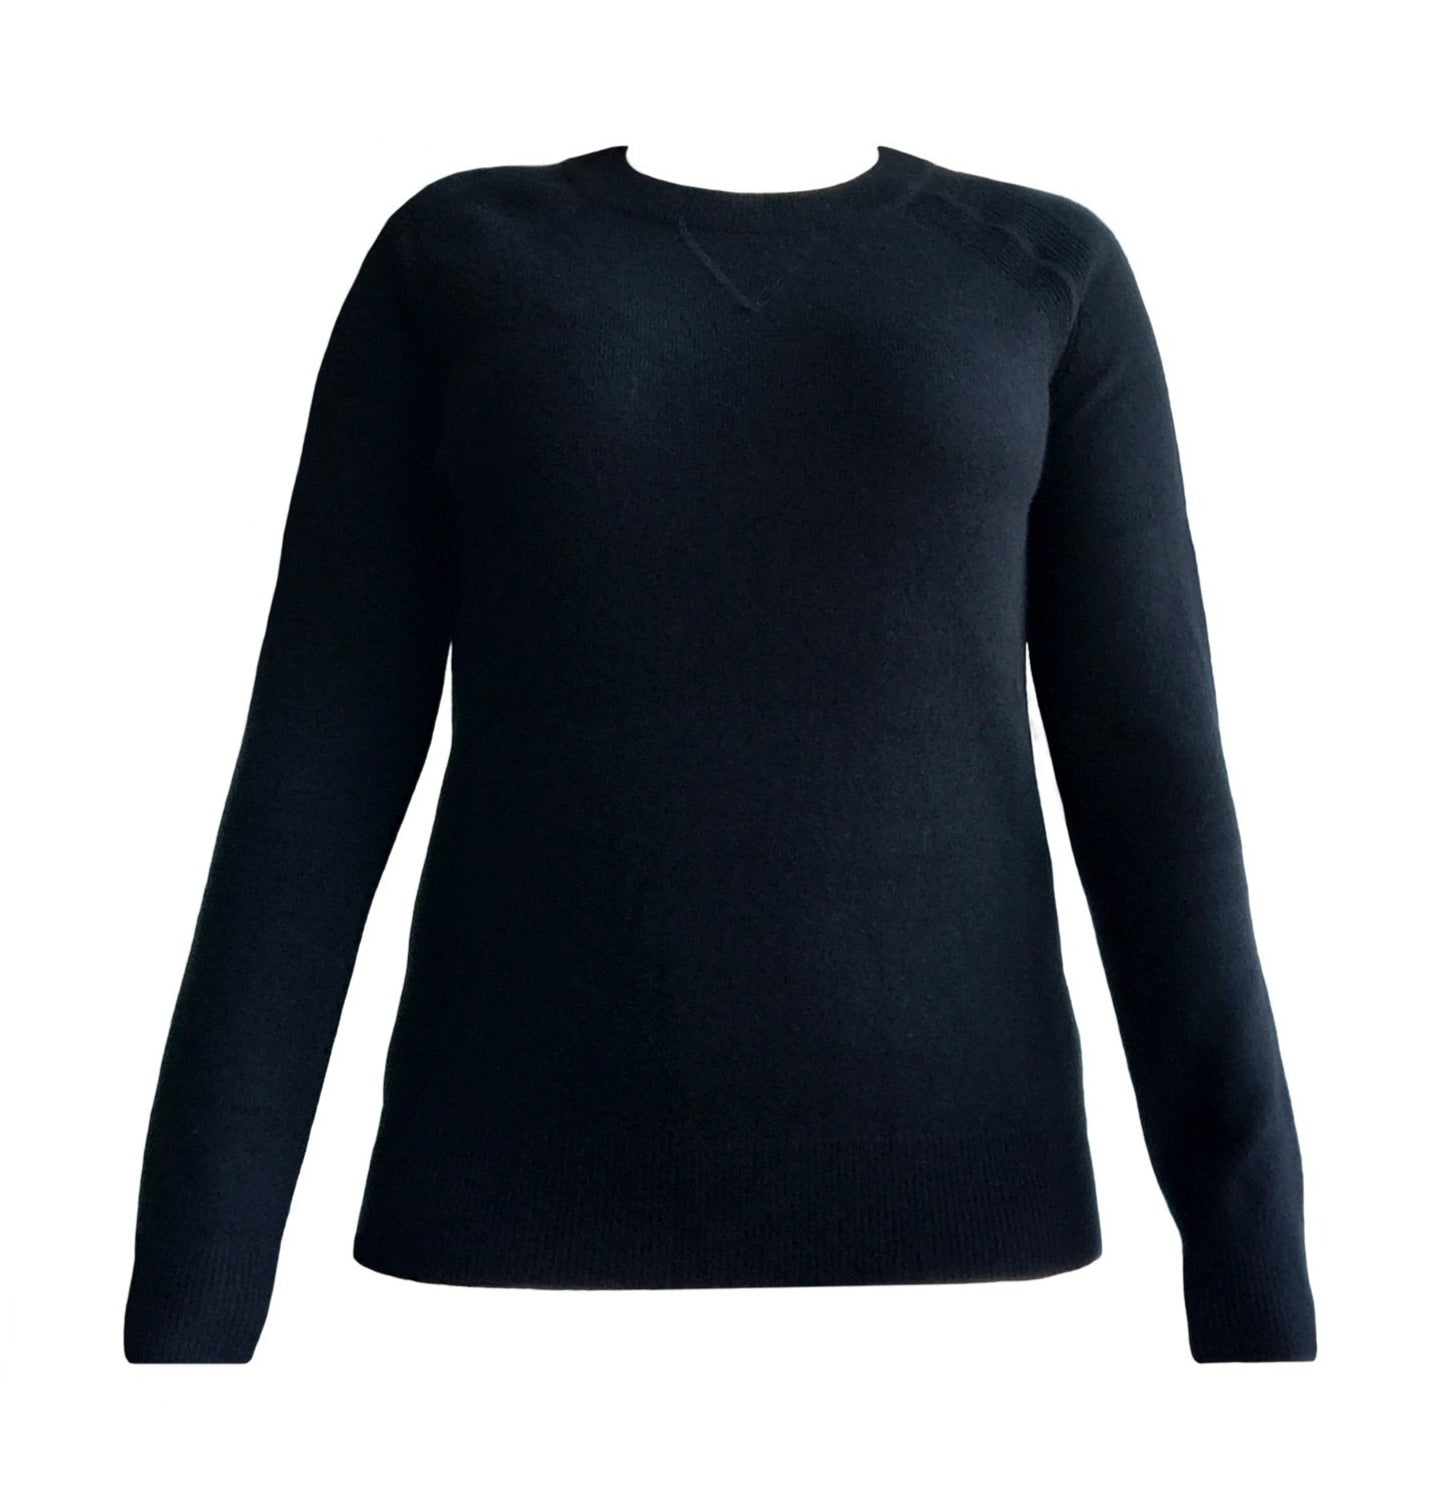 Cashmere Roundneck Sweater in Black